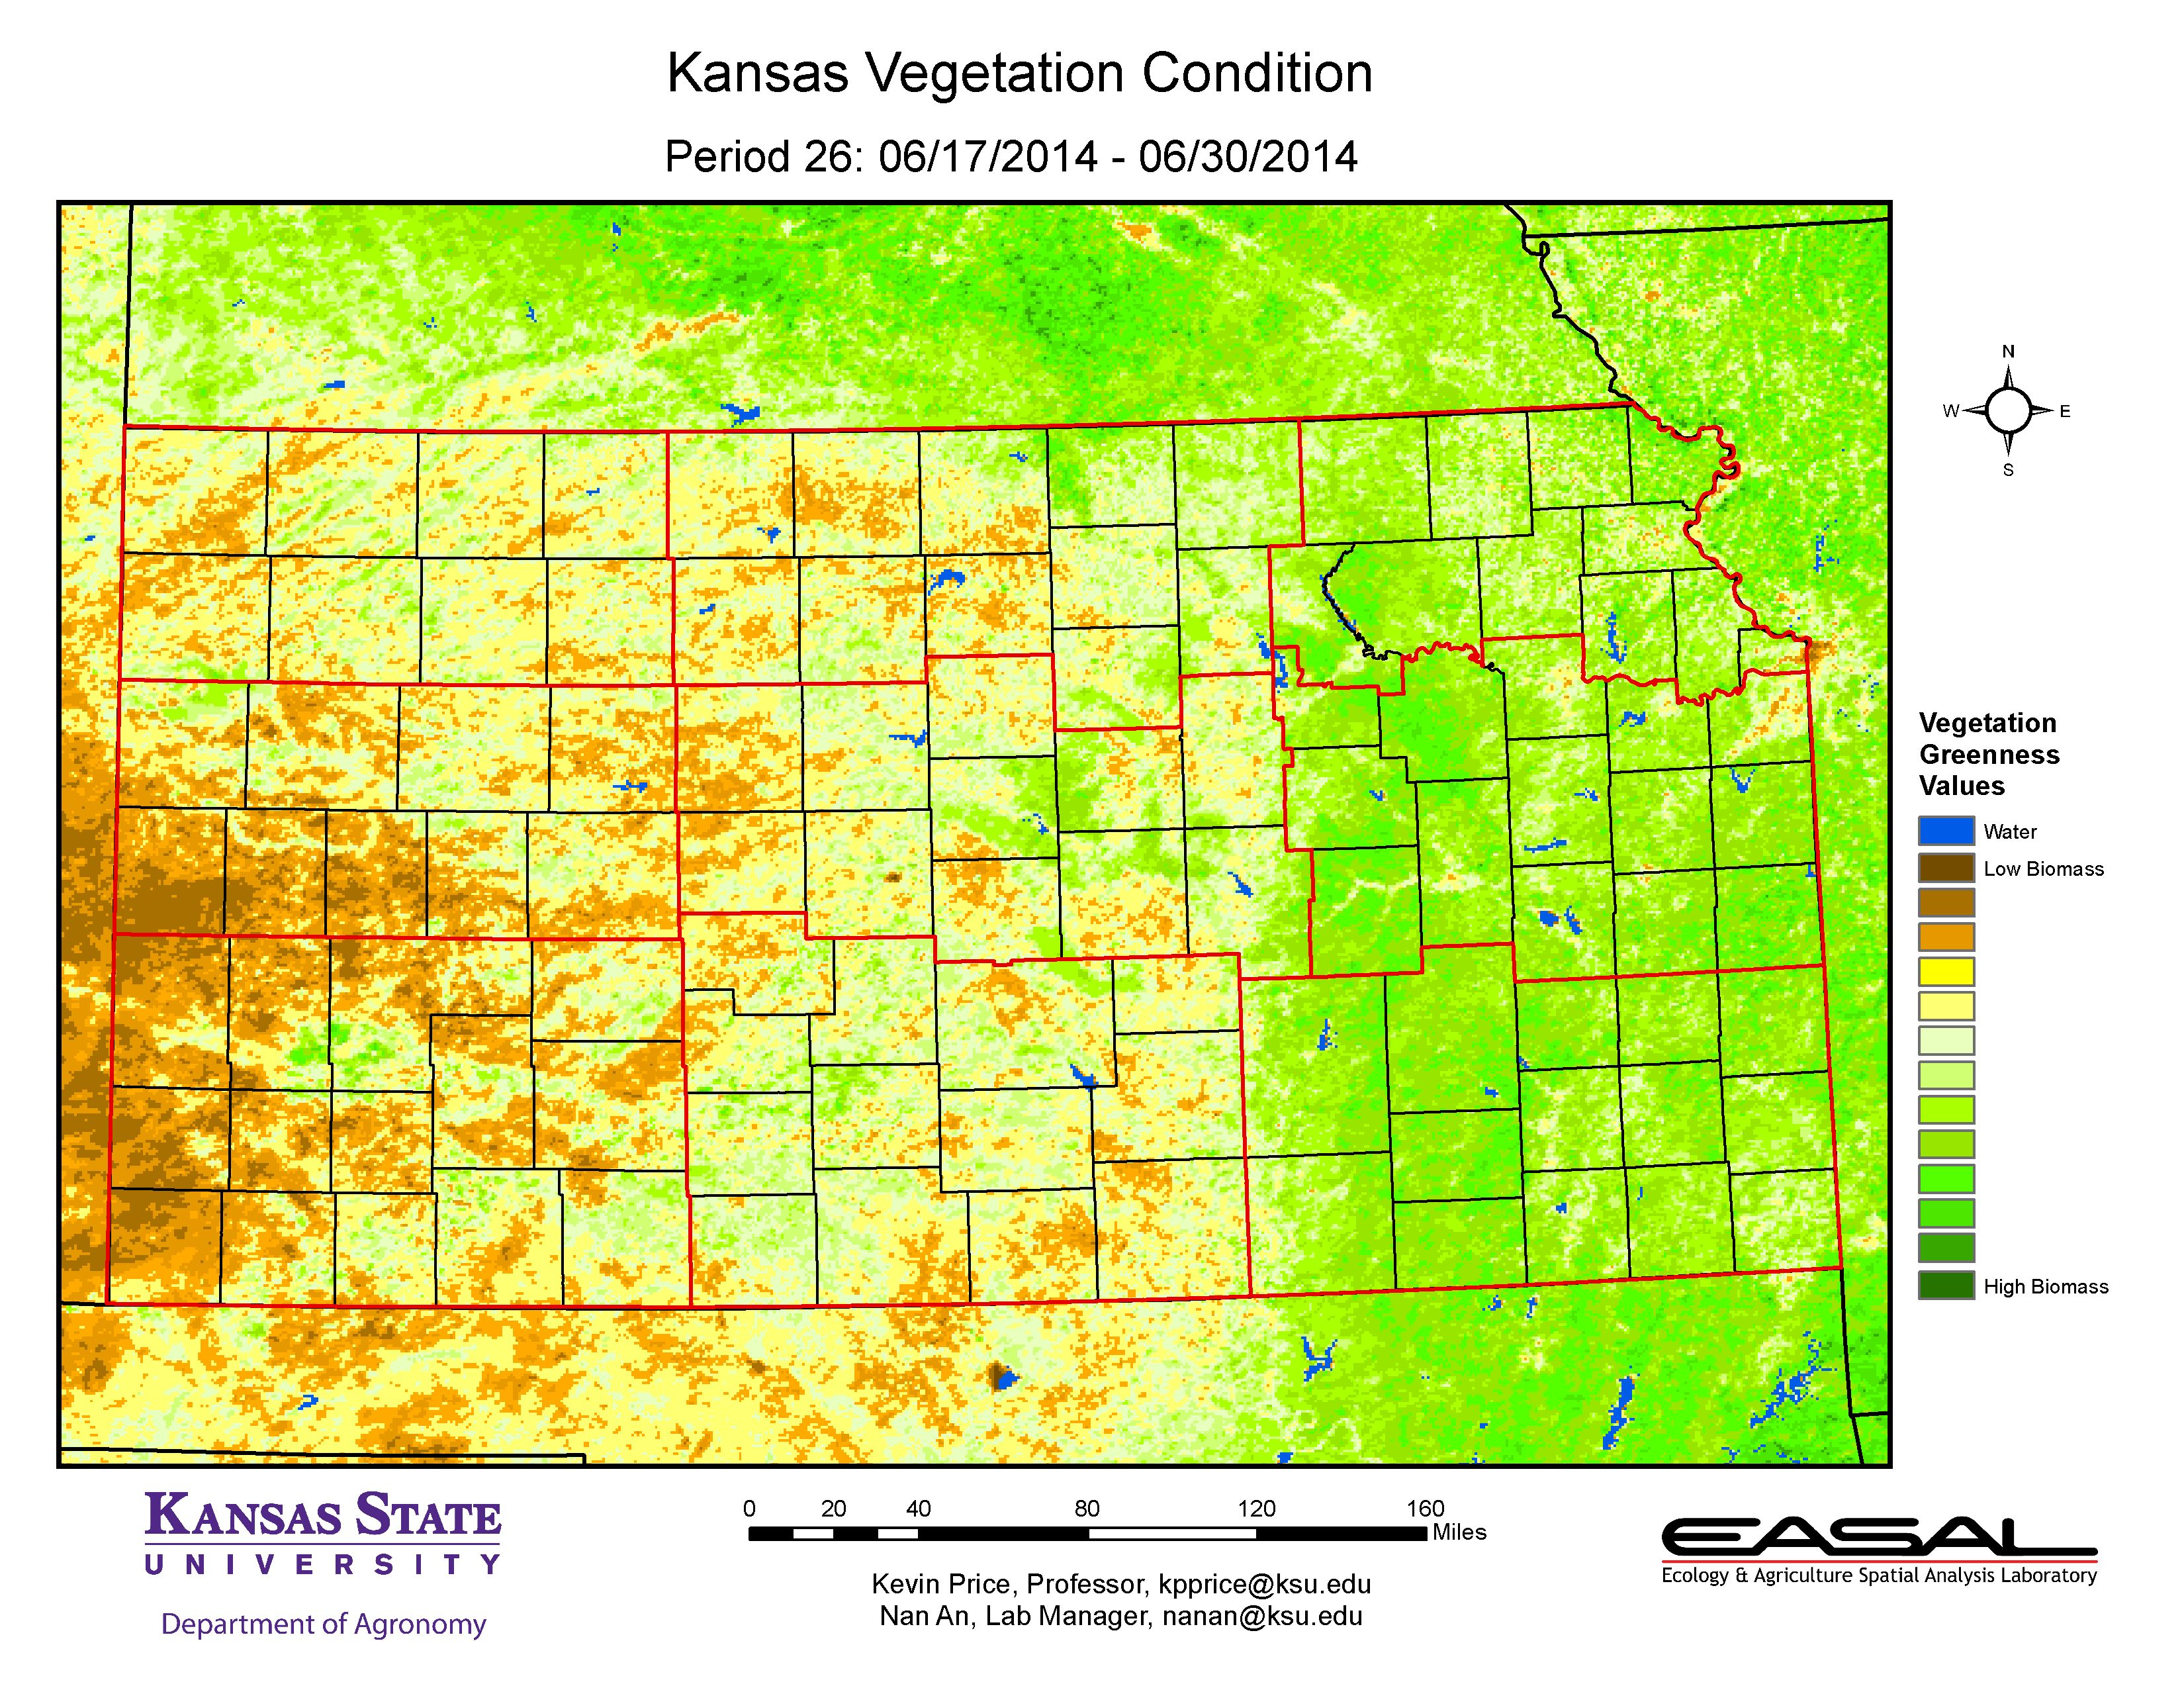 K State Agronomy Eupdate Issue 464 July 3rd Comparative Vegetation Condition Report